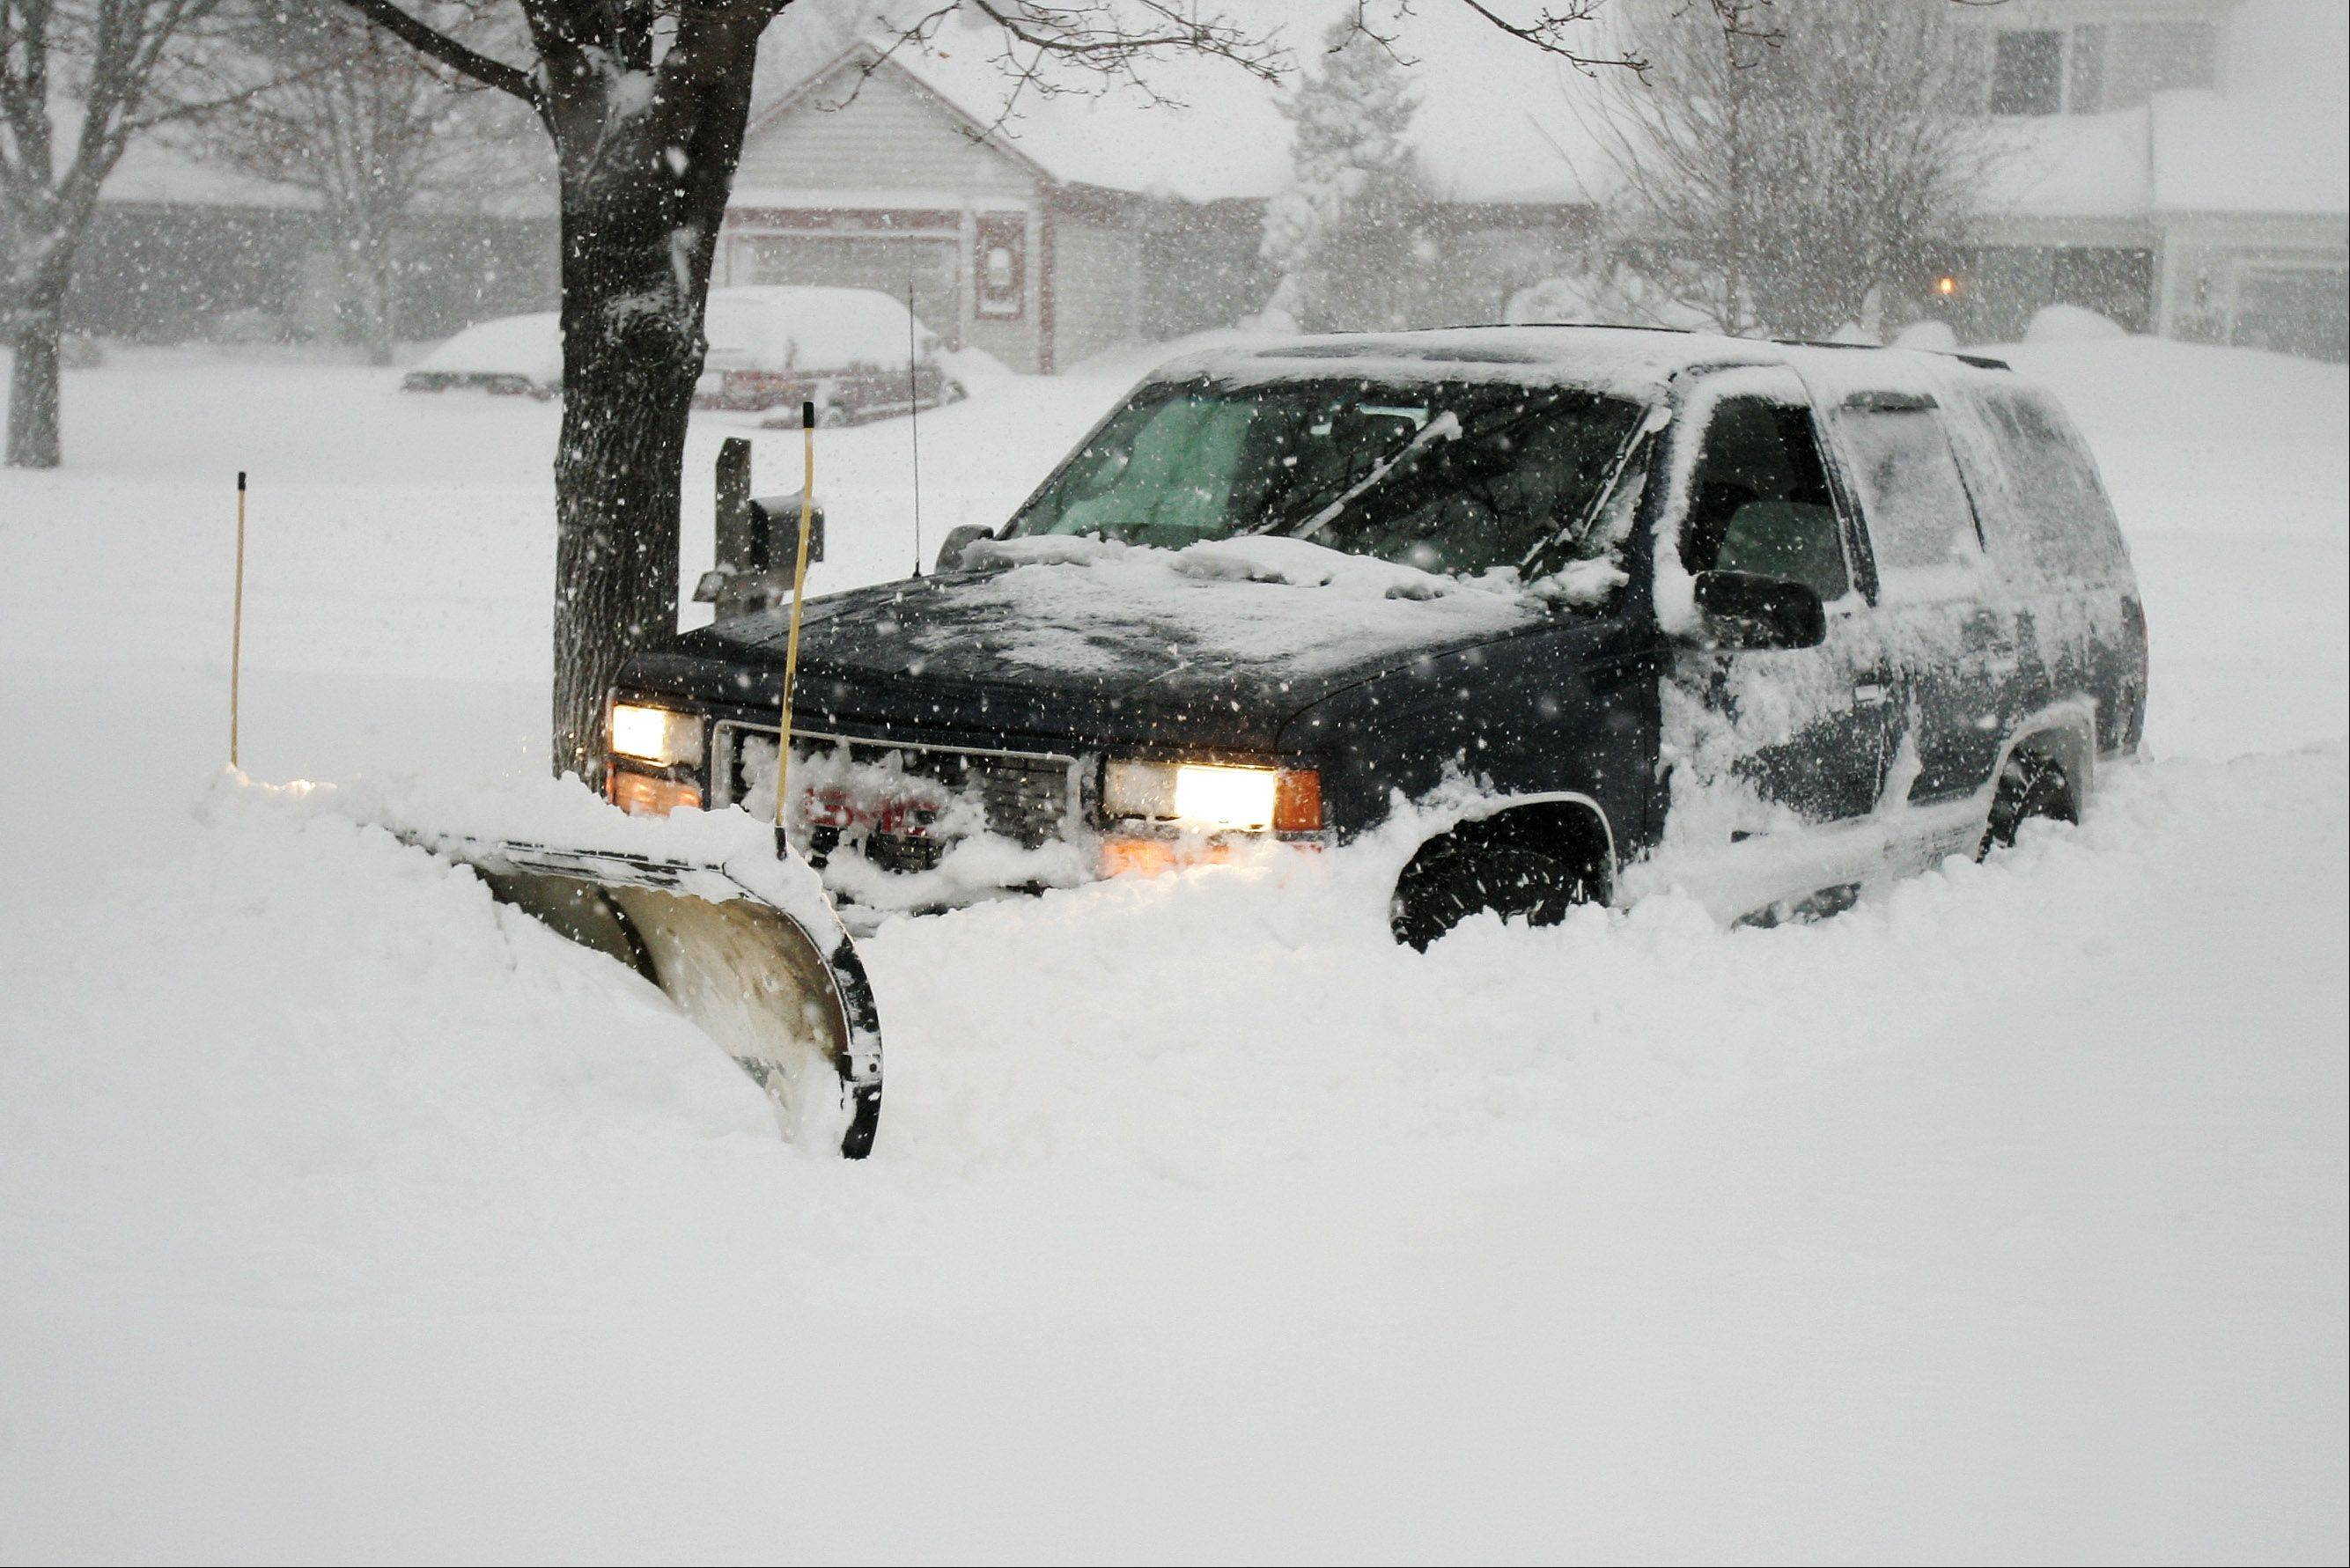 Images: Looking Back at The Blizzard of 2011